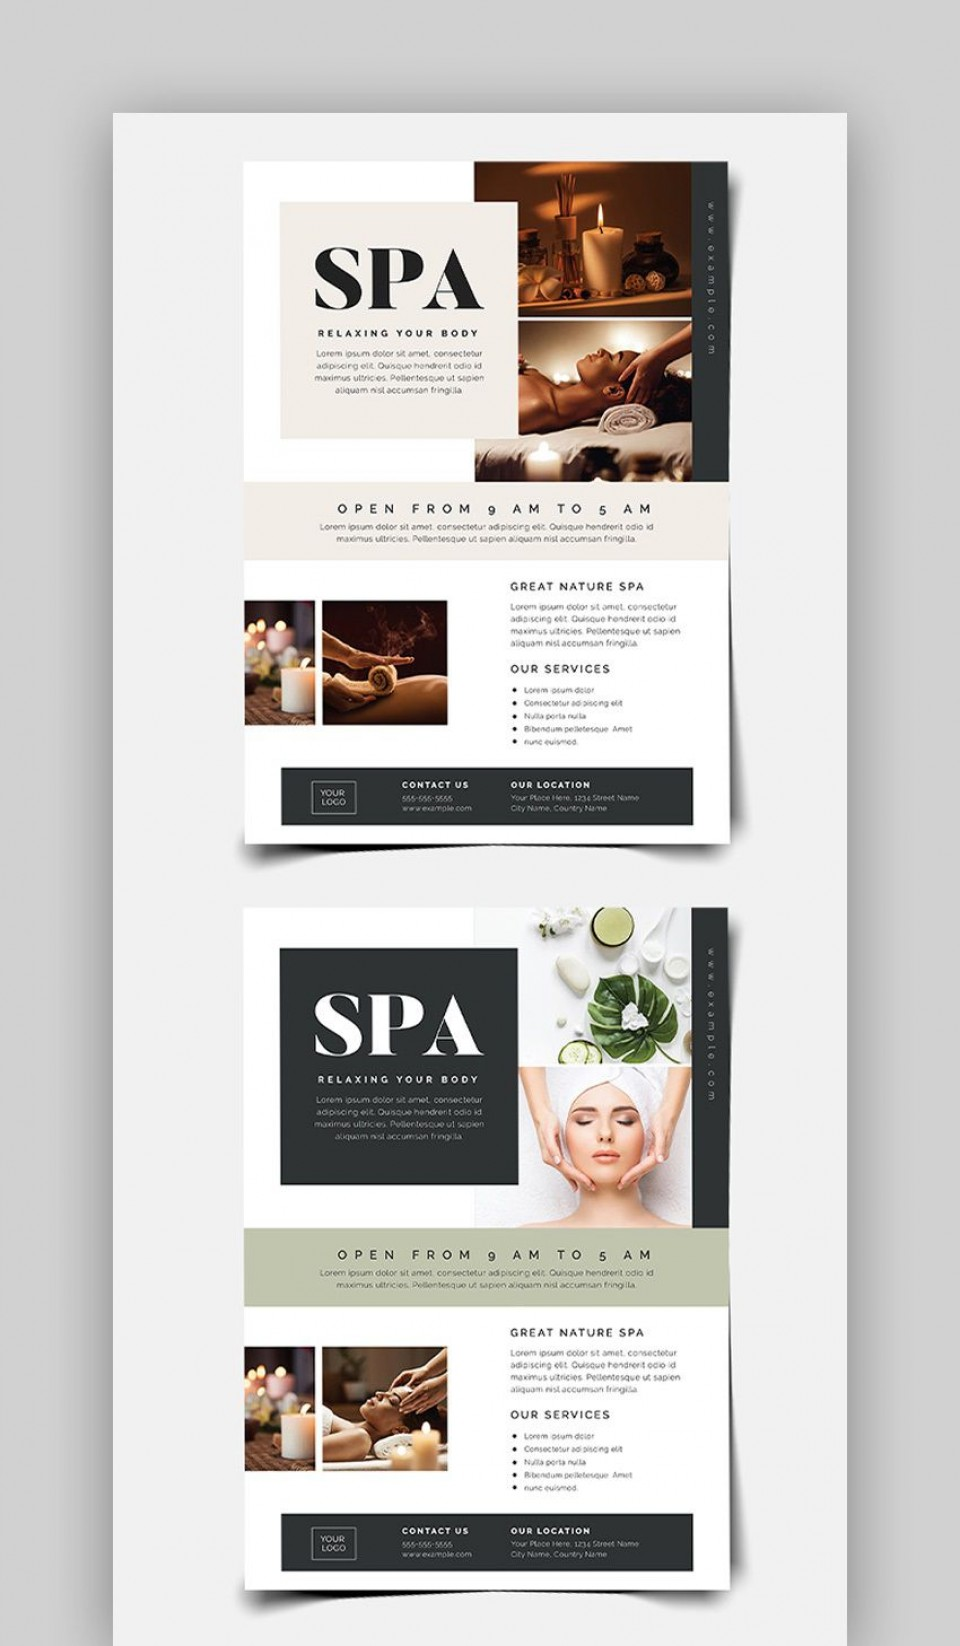 008 Surprising Photoshop Brochure Template Psd Free Download High Def 960